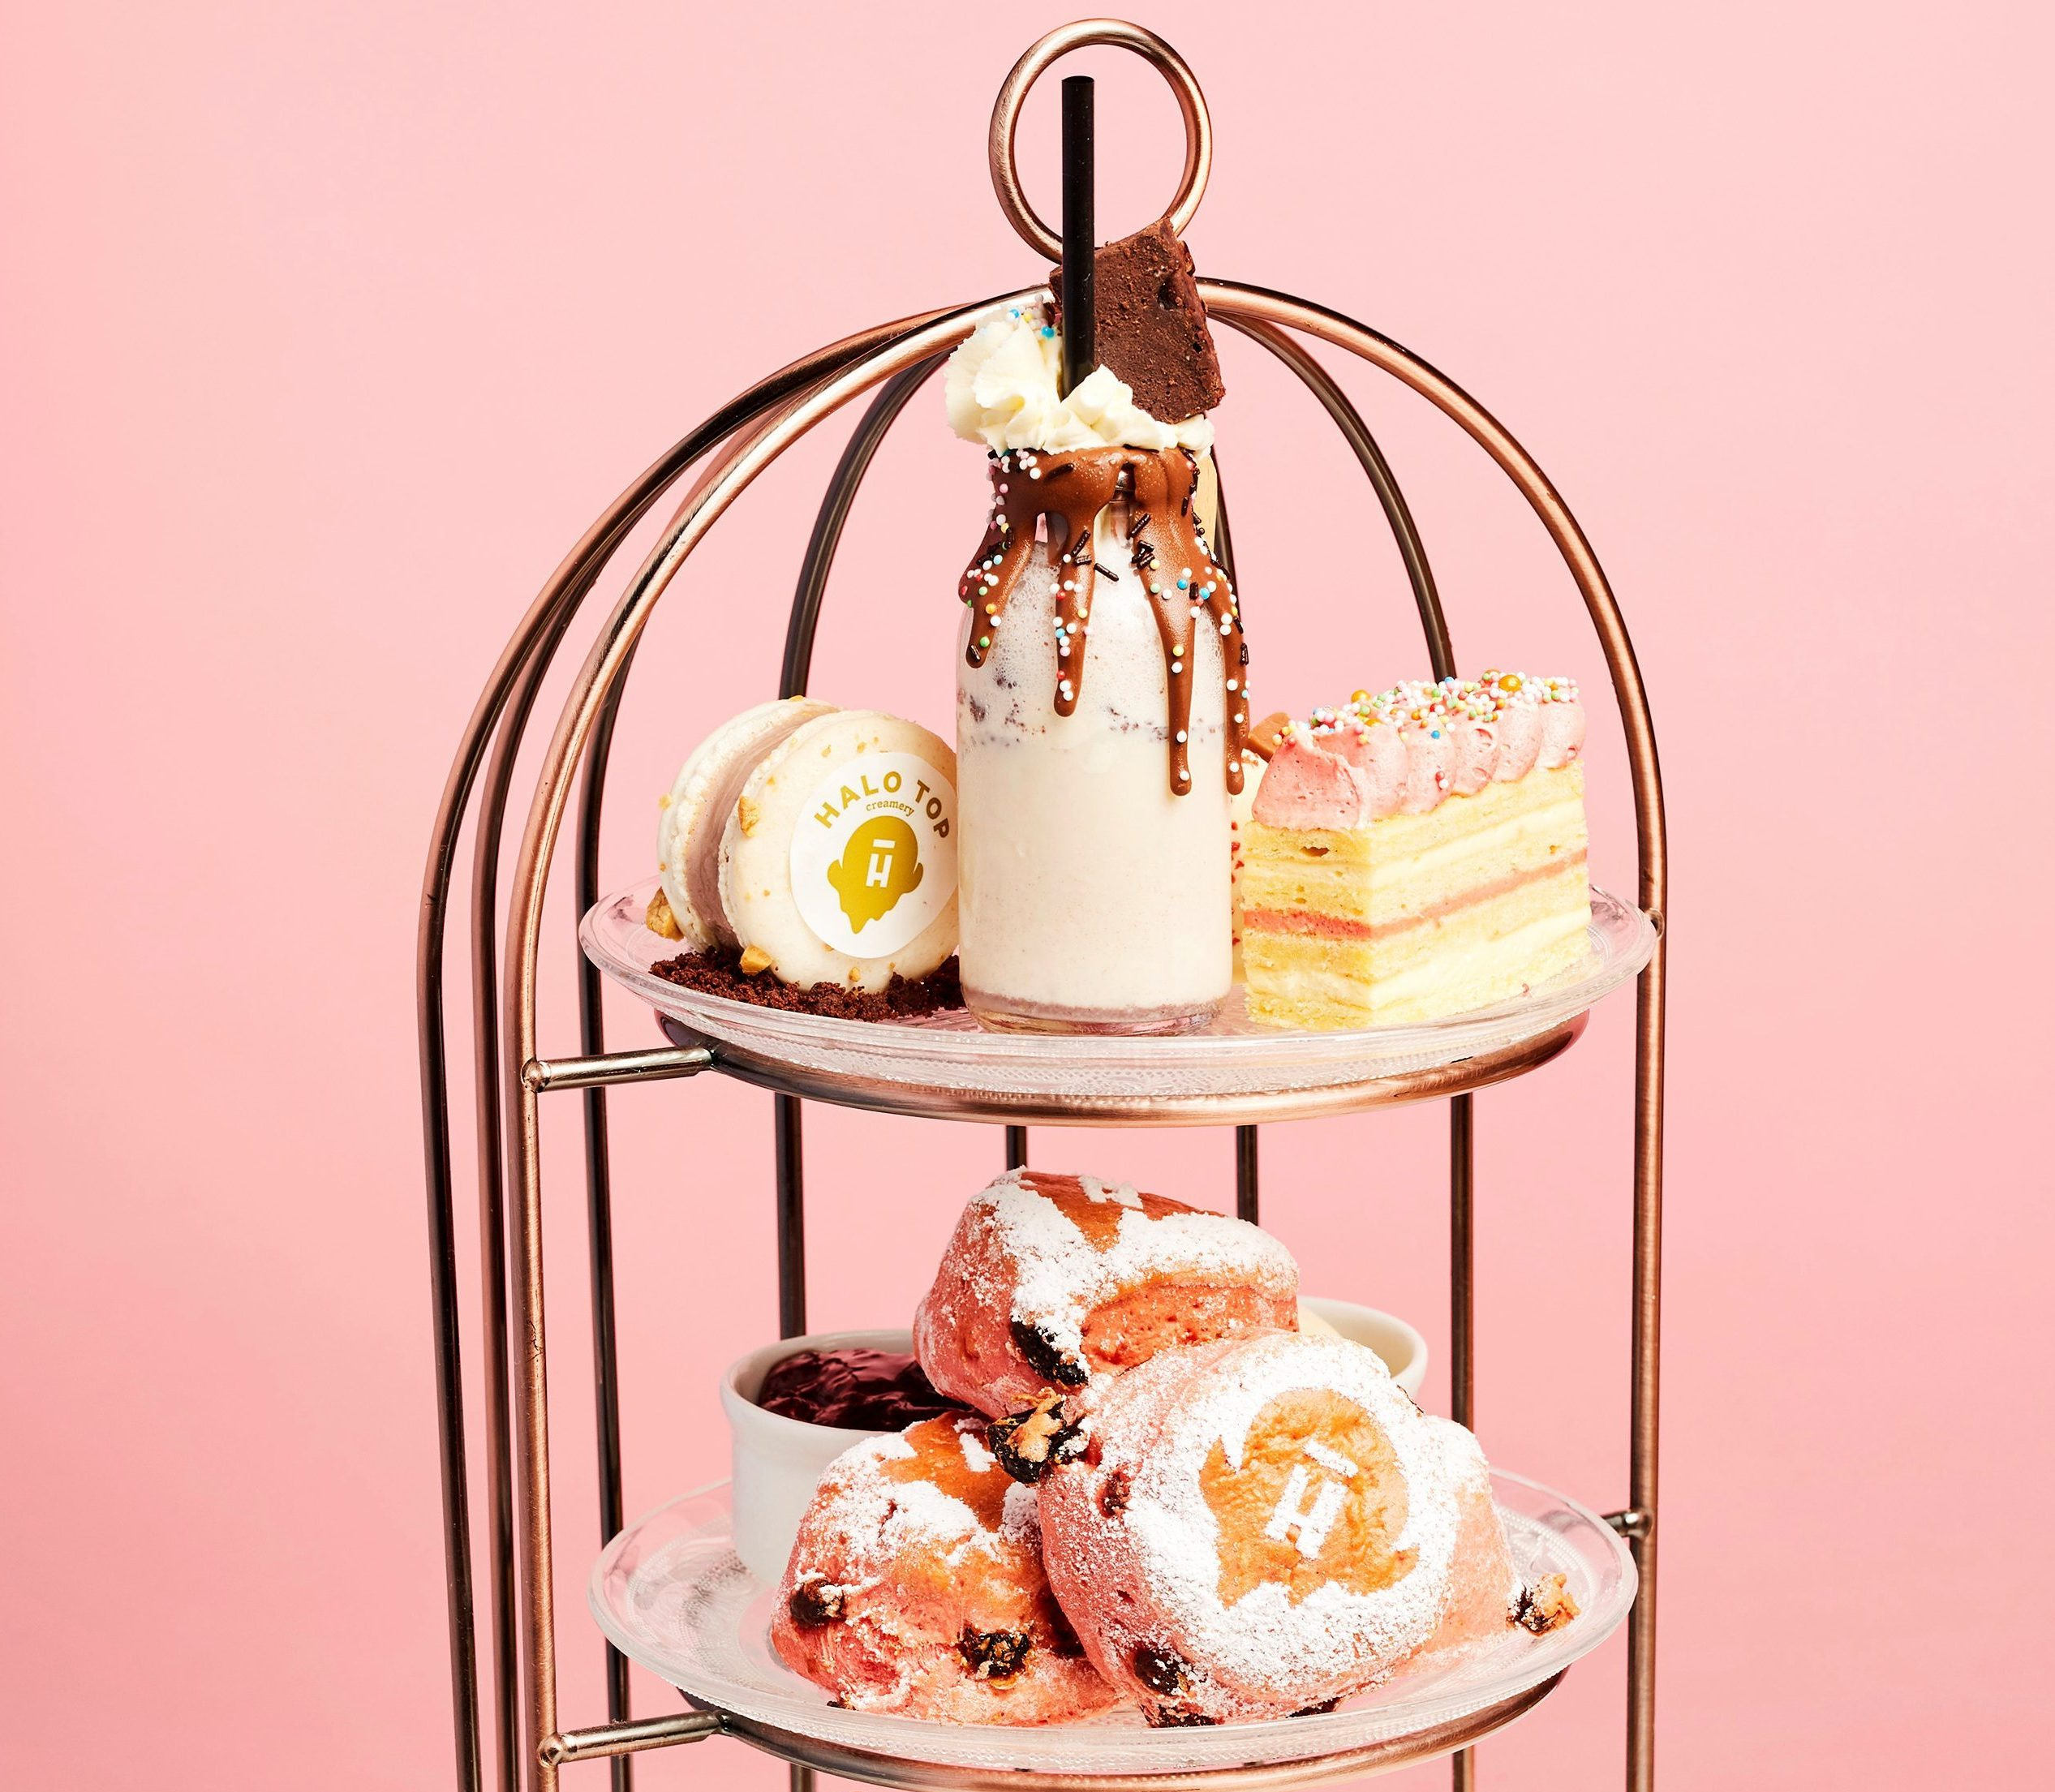 The afternoon tea goodies including a Freak Shake, macaron and more